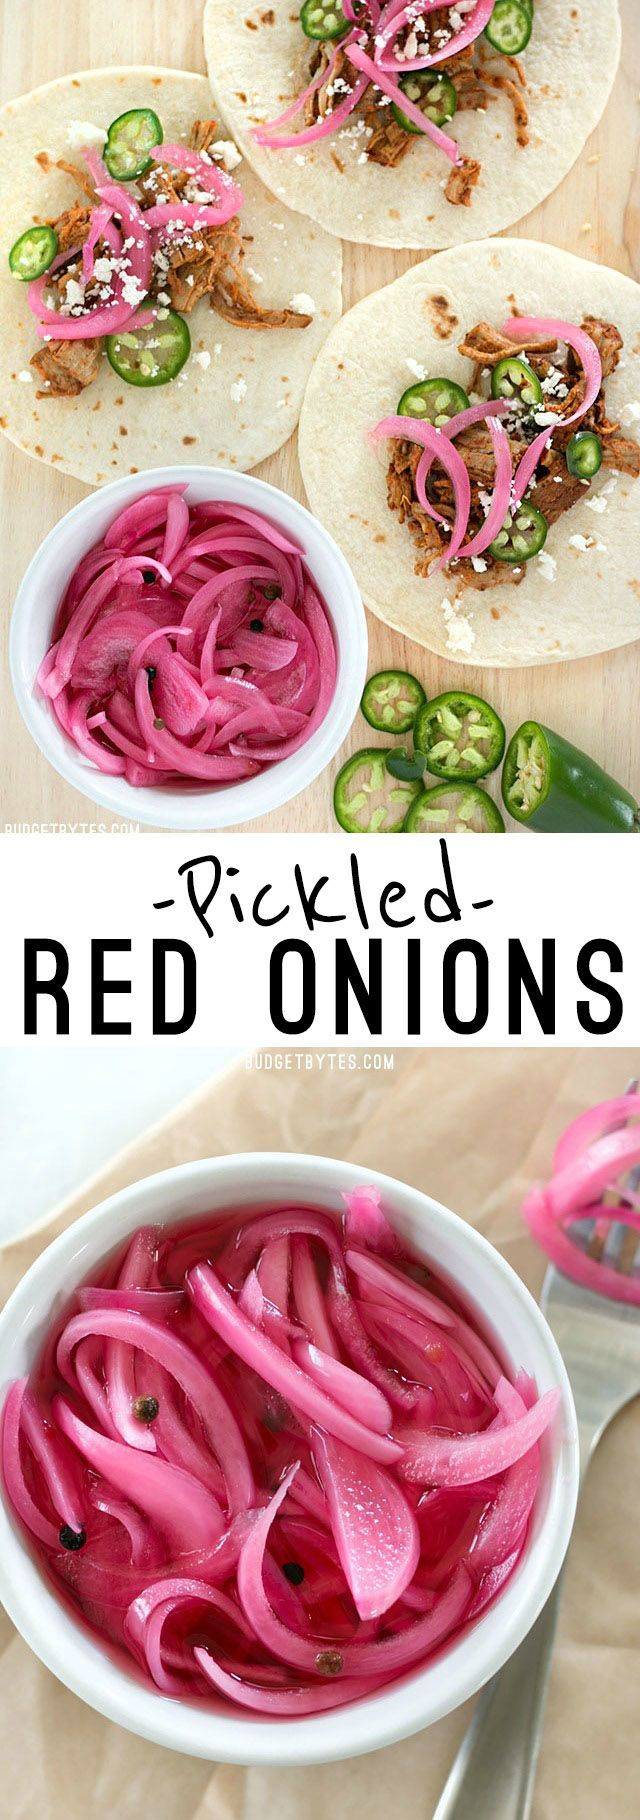 "I often run into the ""red onion dilema"" when making a recipe. You see, a few slivers of fresh red onion can truly transform a recipe (see Thai Curry Vegetable Soup and Slow Cooker Coconut Curry Lentil"